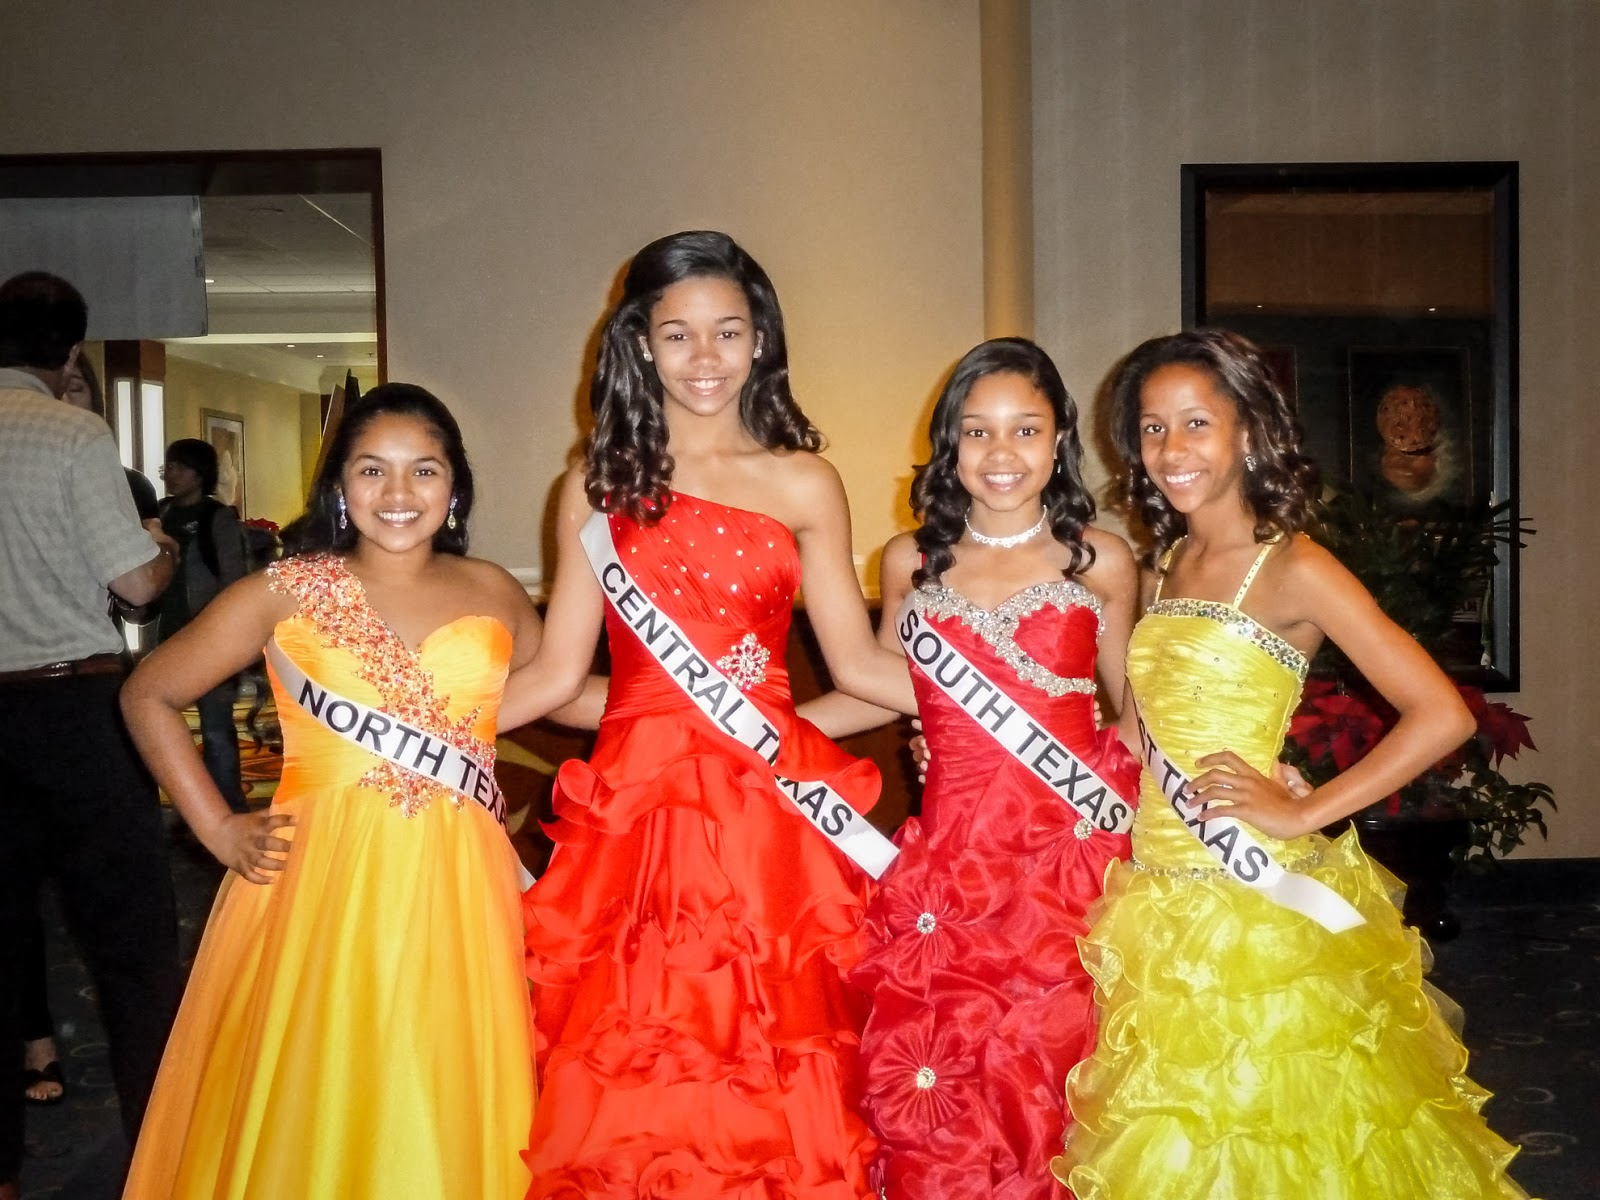 NATIONAL AMERICAN MISS...365 !!!: 7/21/13 - 7/ls preteen